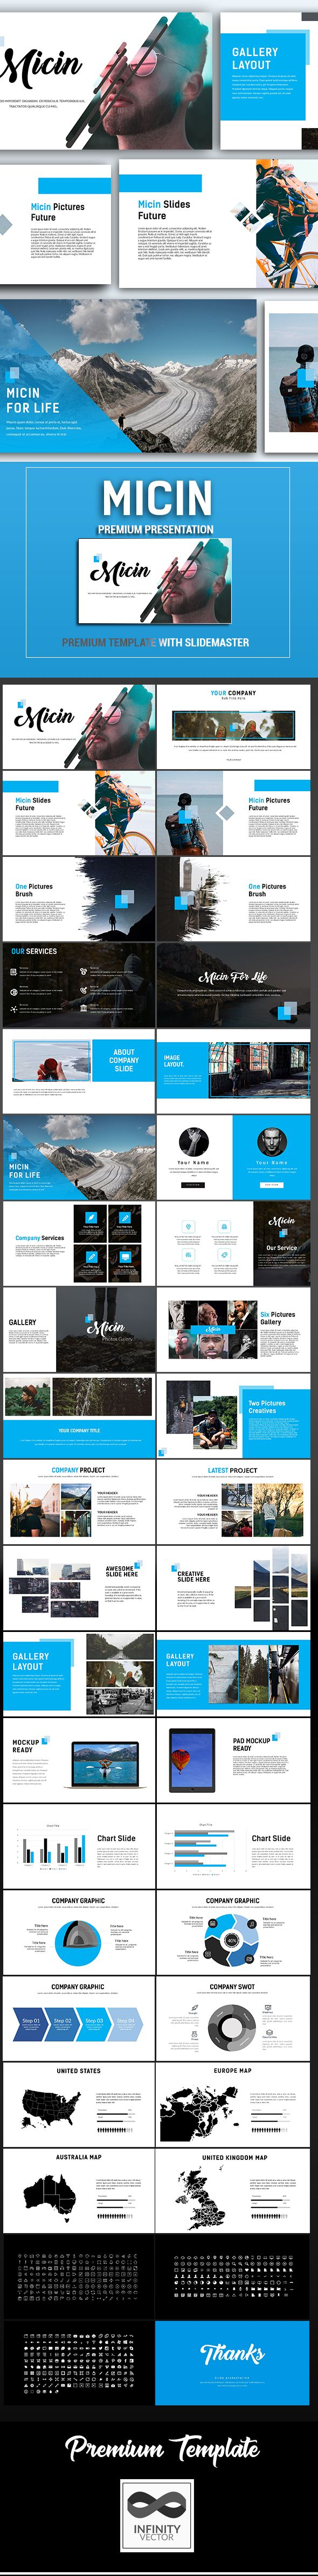 Micin Google Slide Template  Google Slides Presentation Templates